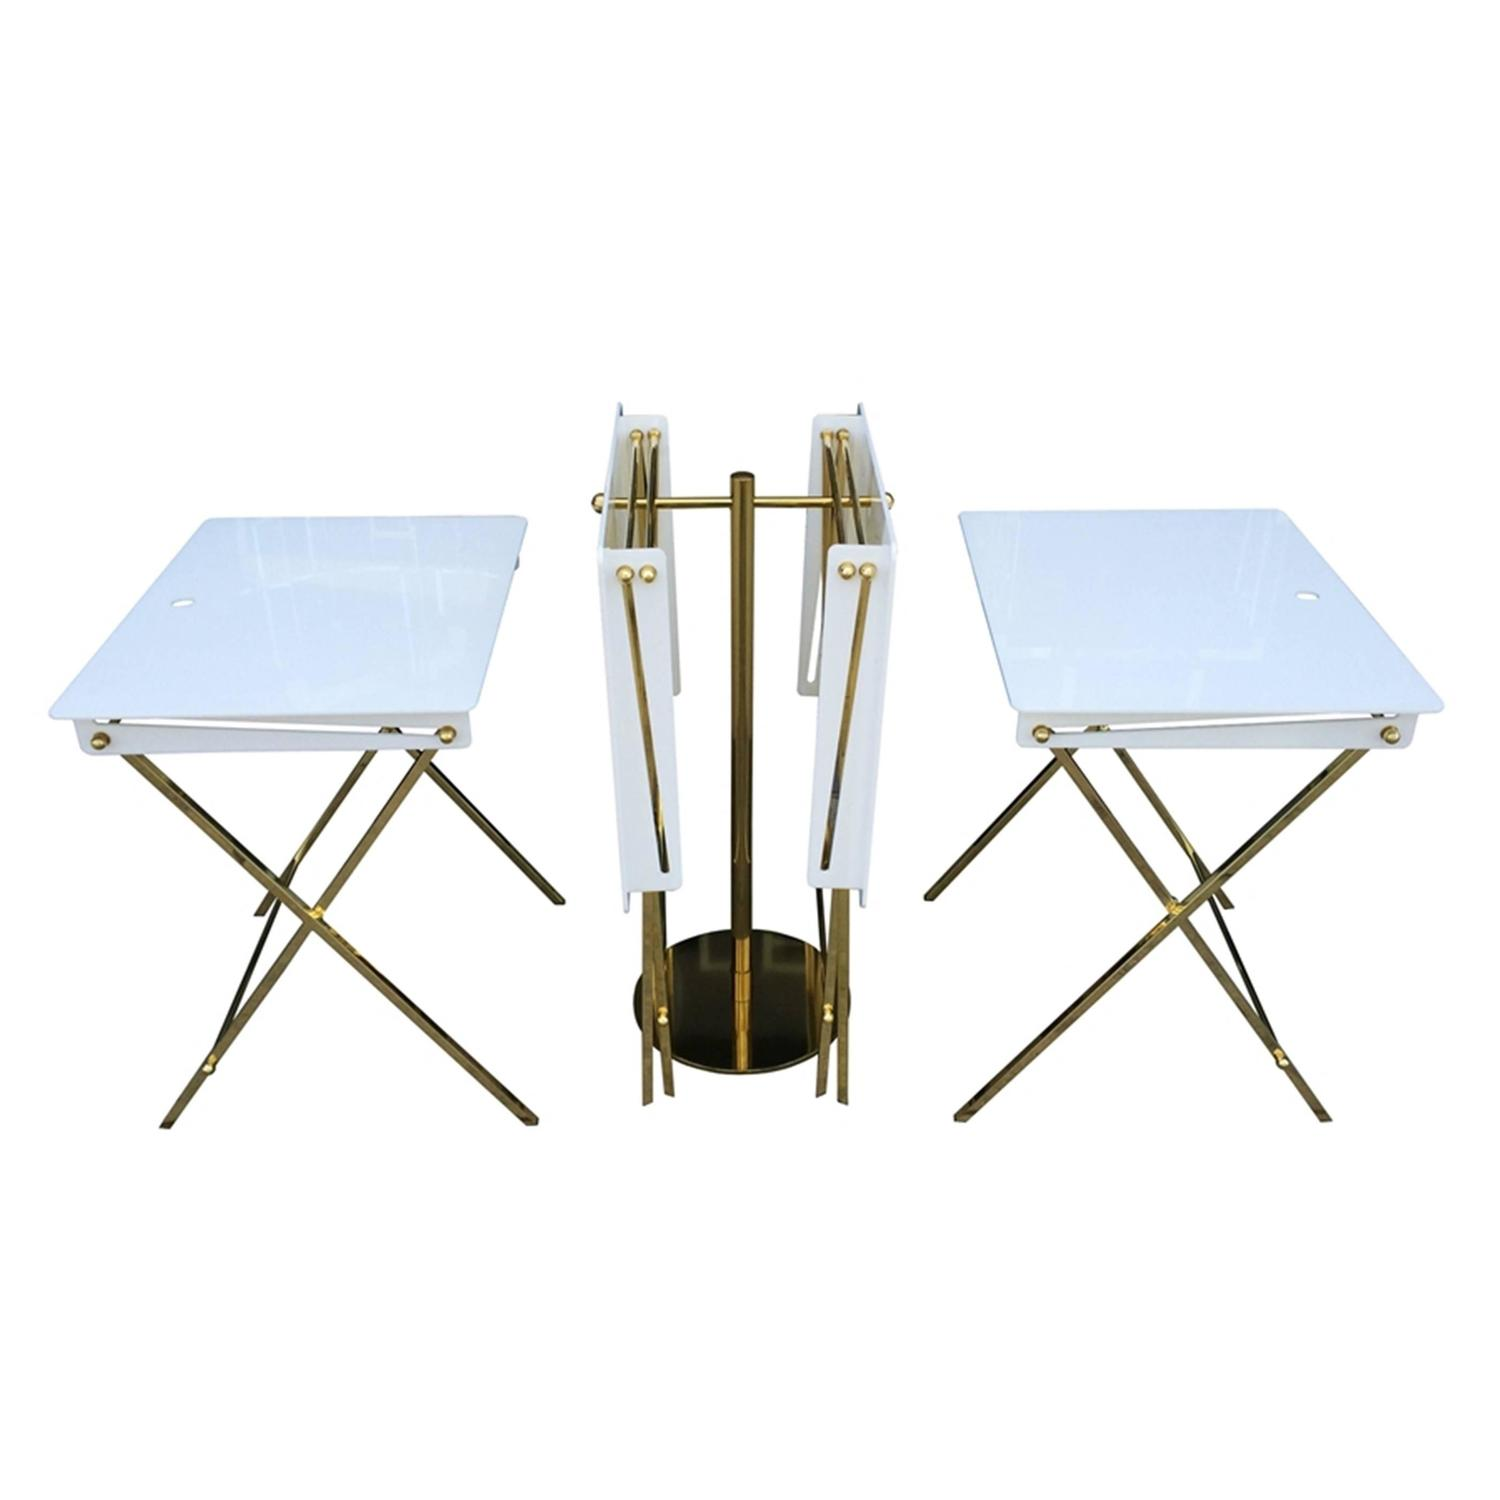 Set of Four Acrylic and Brass Serving Trays with Stand by Charles Hollis Jones  sc 1 st  1stDibs & Charles Hollis Jones Tray Tables - 10 For Sale at 1stdibs